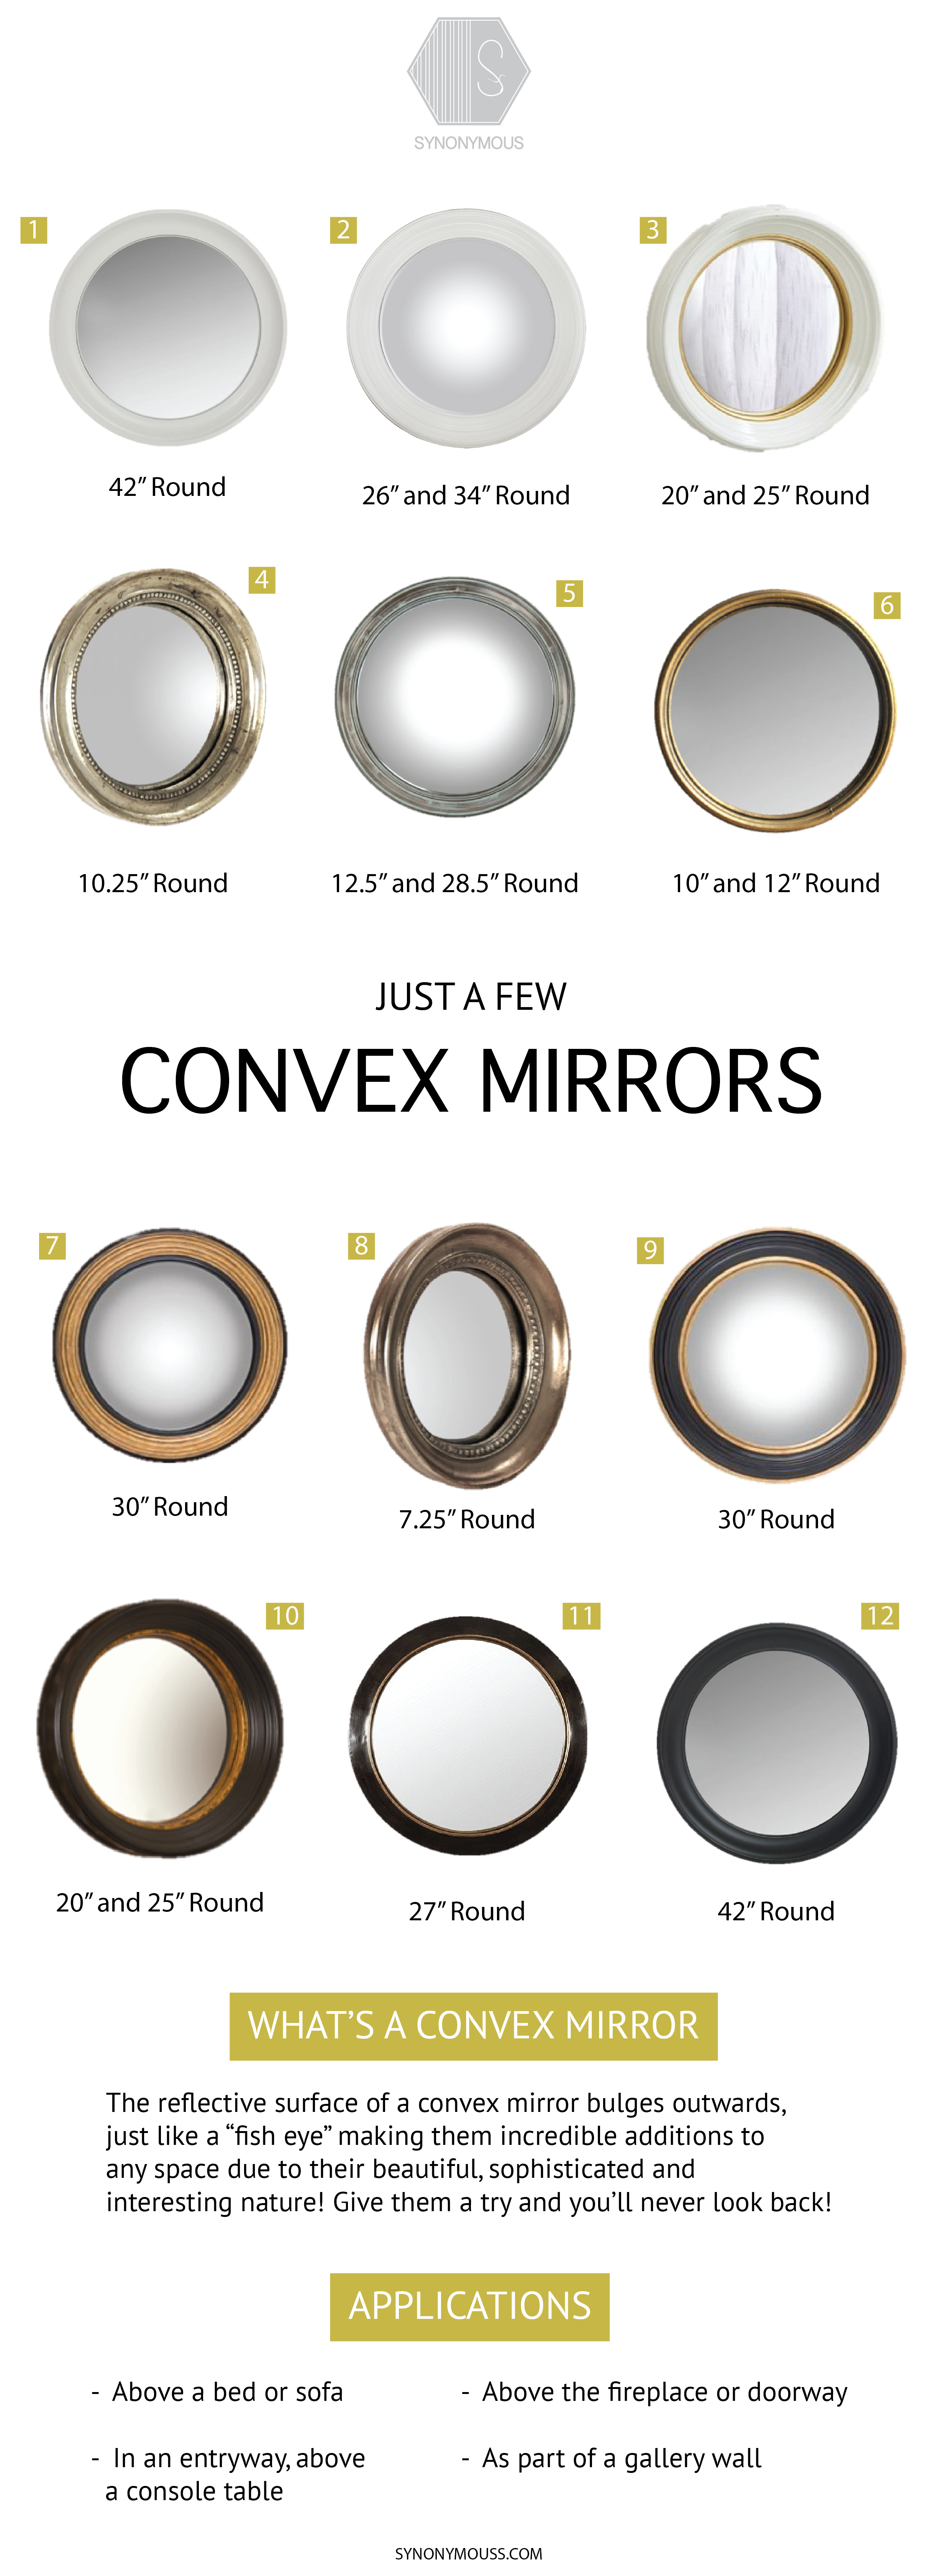 The Beauty of Convex Mirrors - Round Mirrors - Convex Mirror Round-up - Featured Mirrors can be purchased through synonymouss.com - SYNONYMOUS